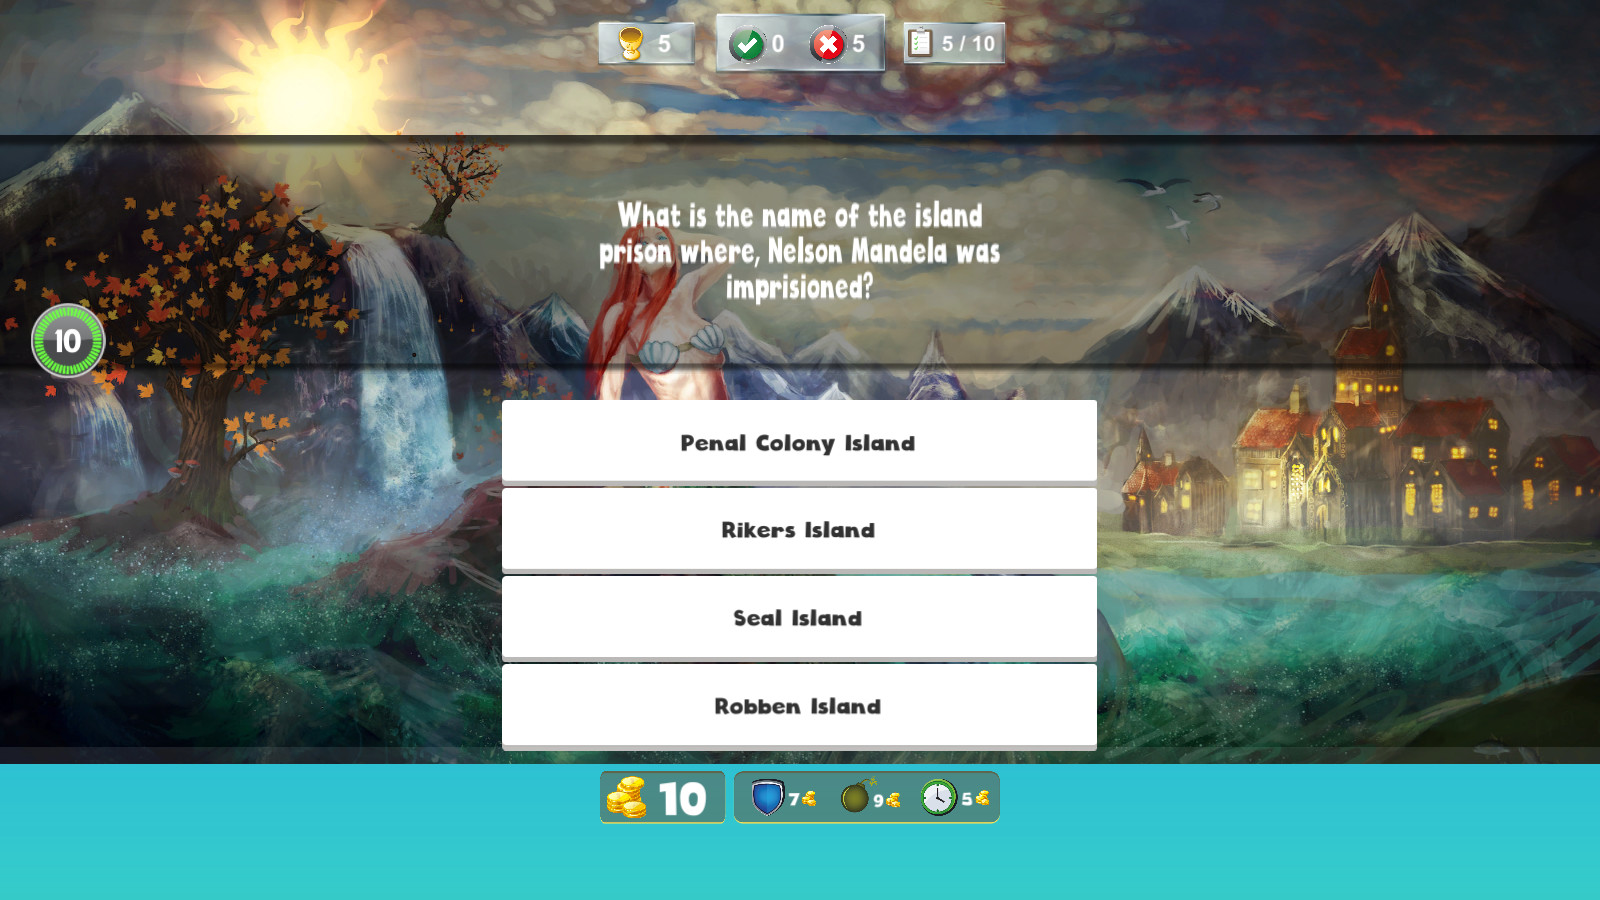 QUIZ PRO! - General Knowledge screenshot